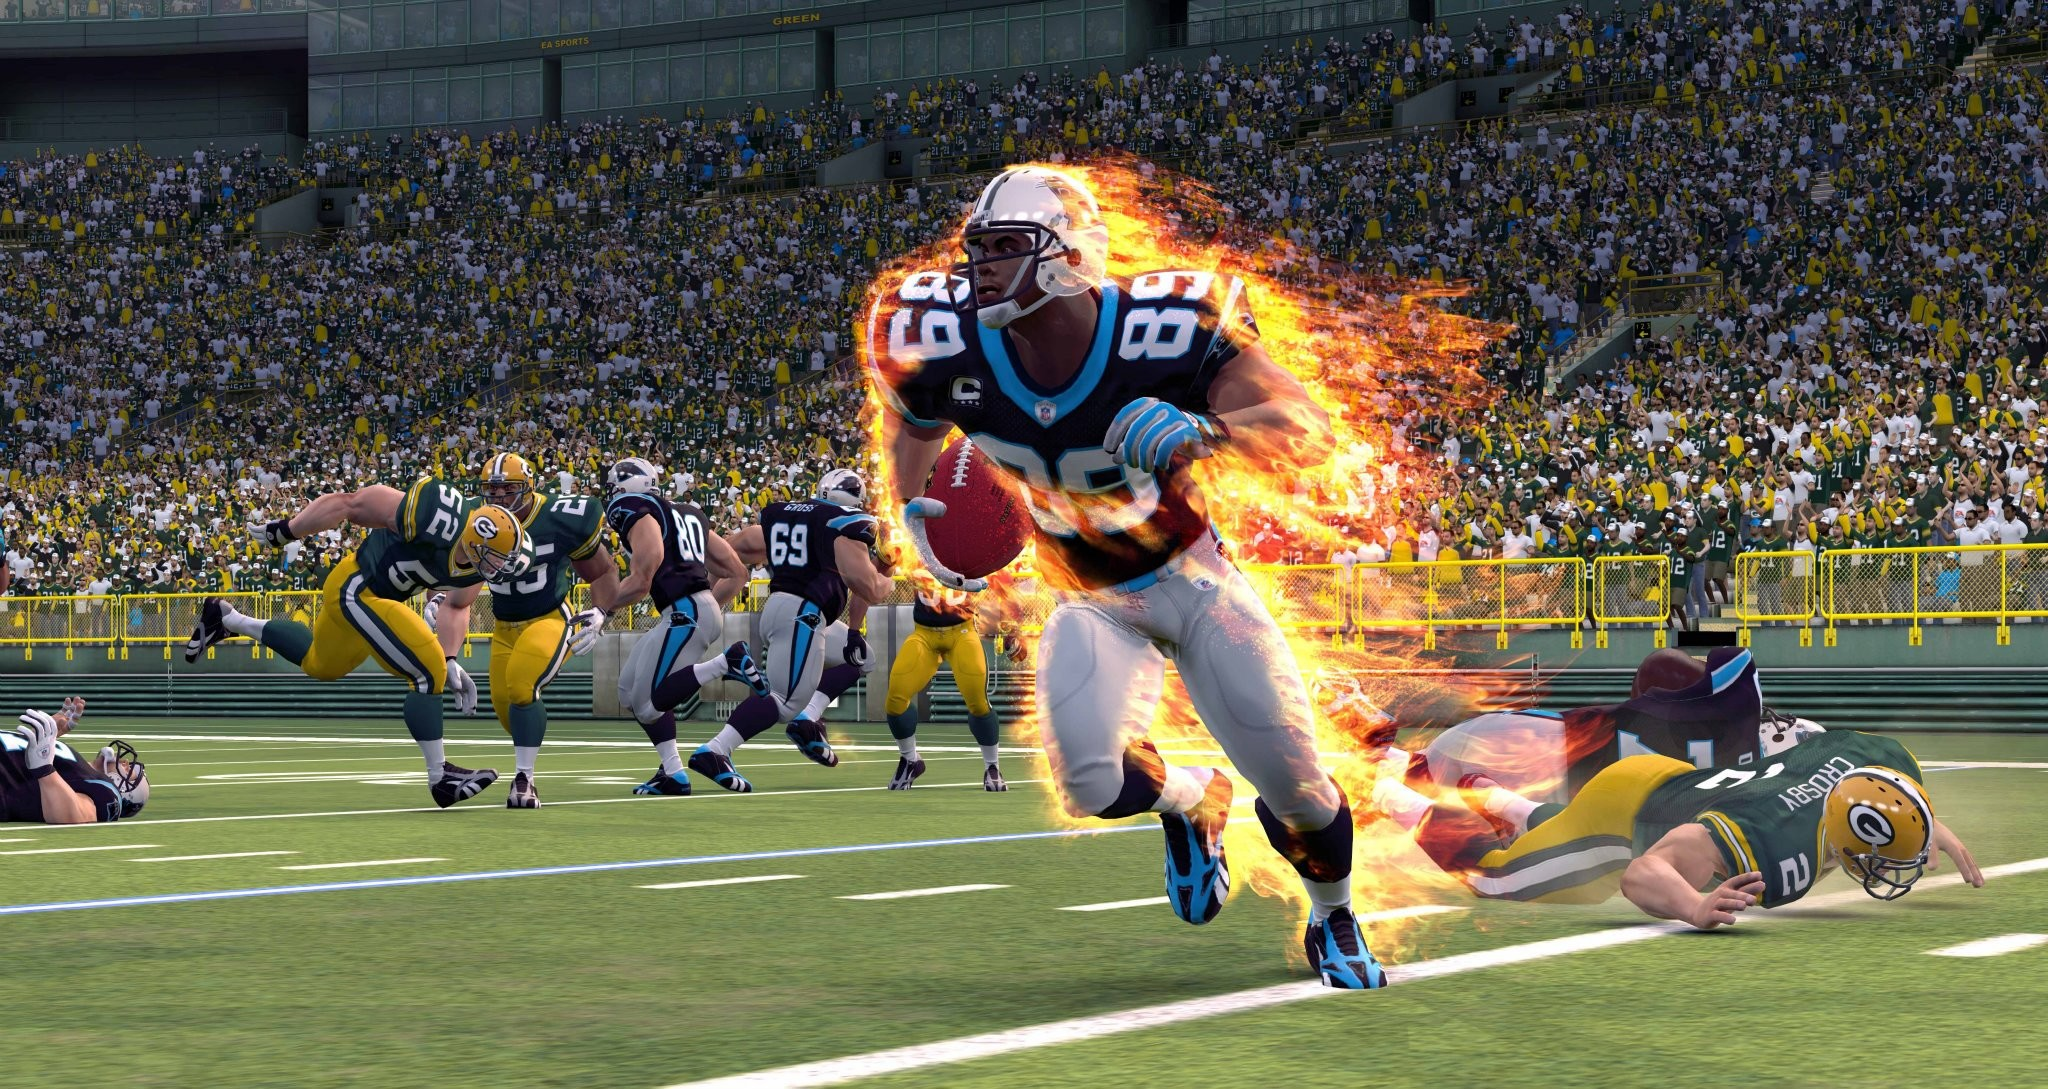 Nfl Football Players Wallpaper 55 Images